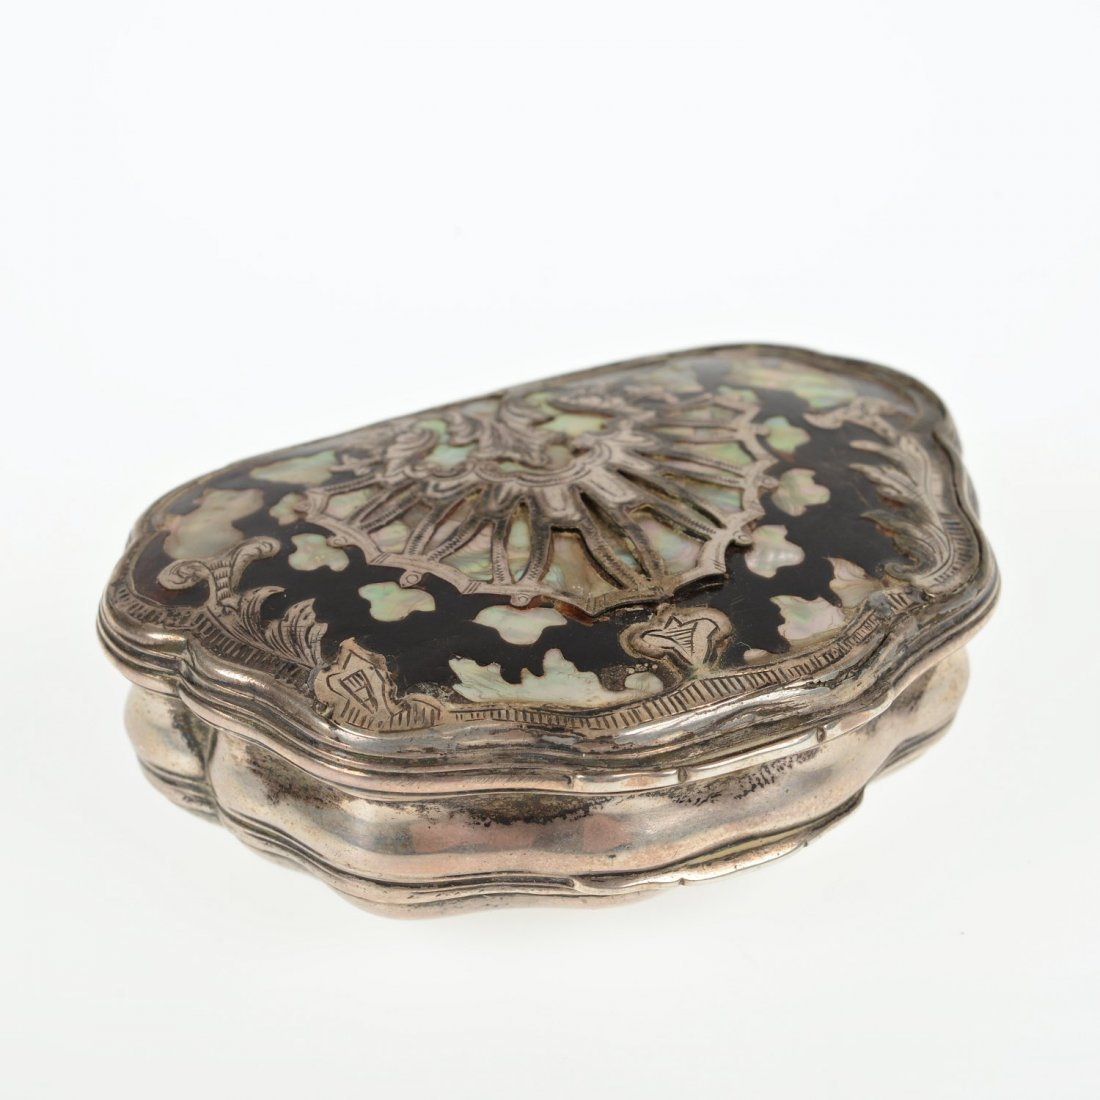 Antique silver inlaid shell-form snuff box